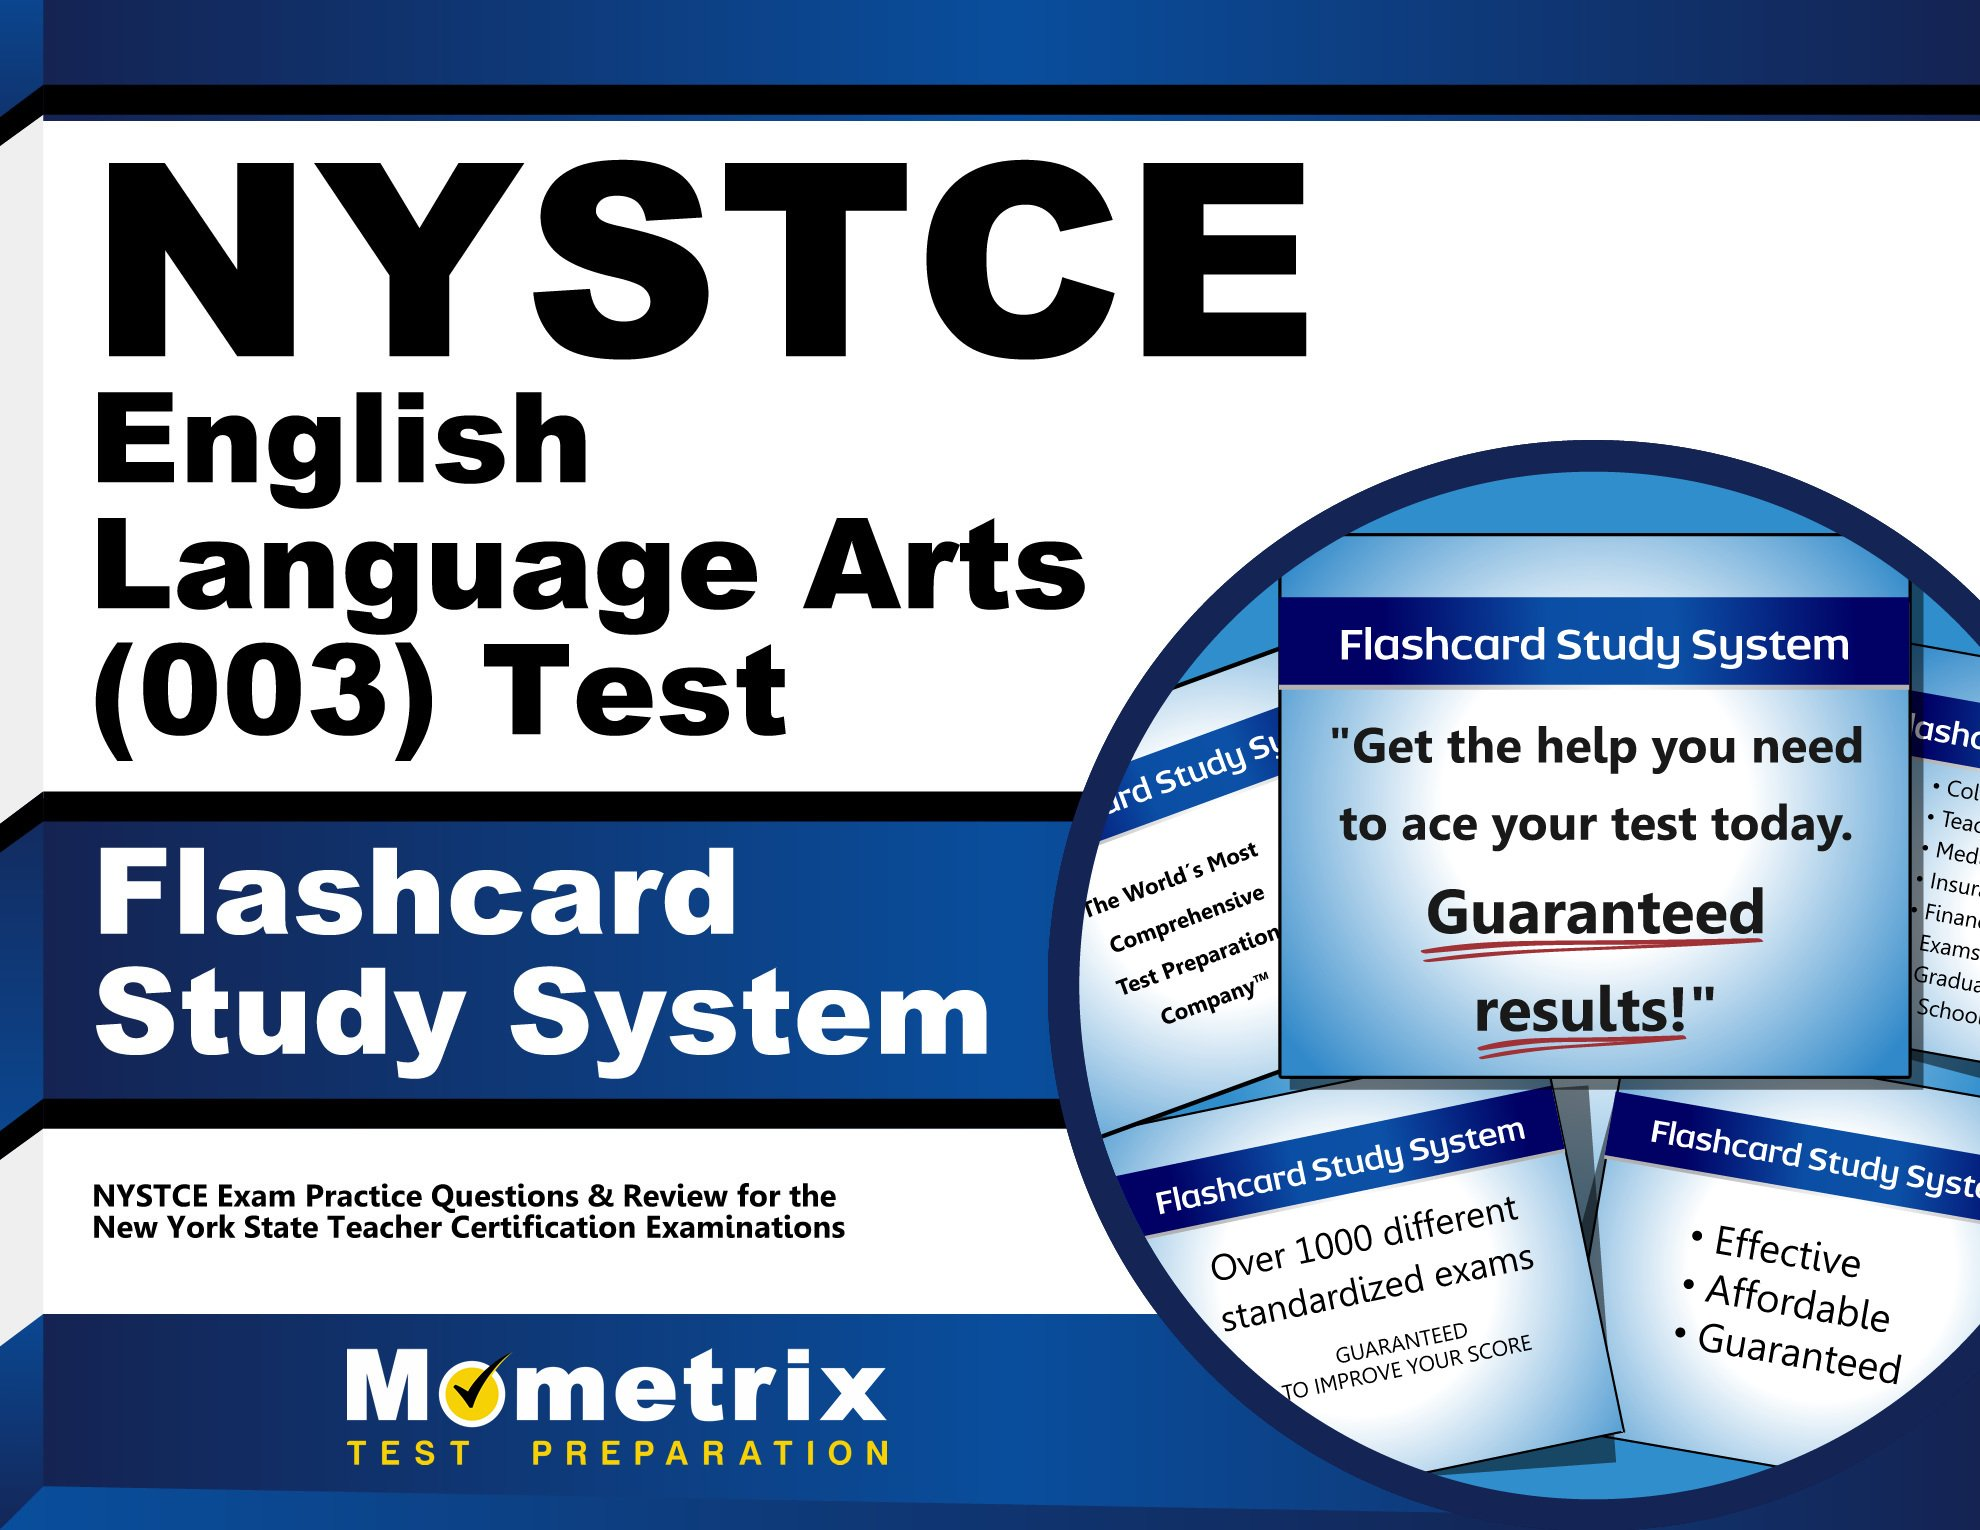 NYSTCE English Language Arts (003) Test Flashcard Study System: NYSTCE Exam Practice Questions & Review for the New York State Teacher Certification Examinations (Cards)